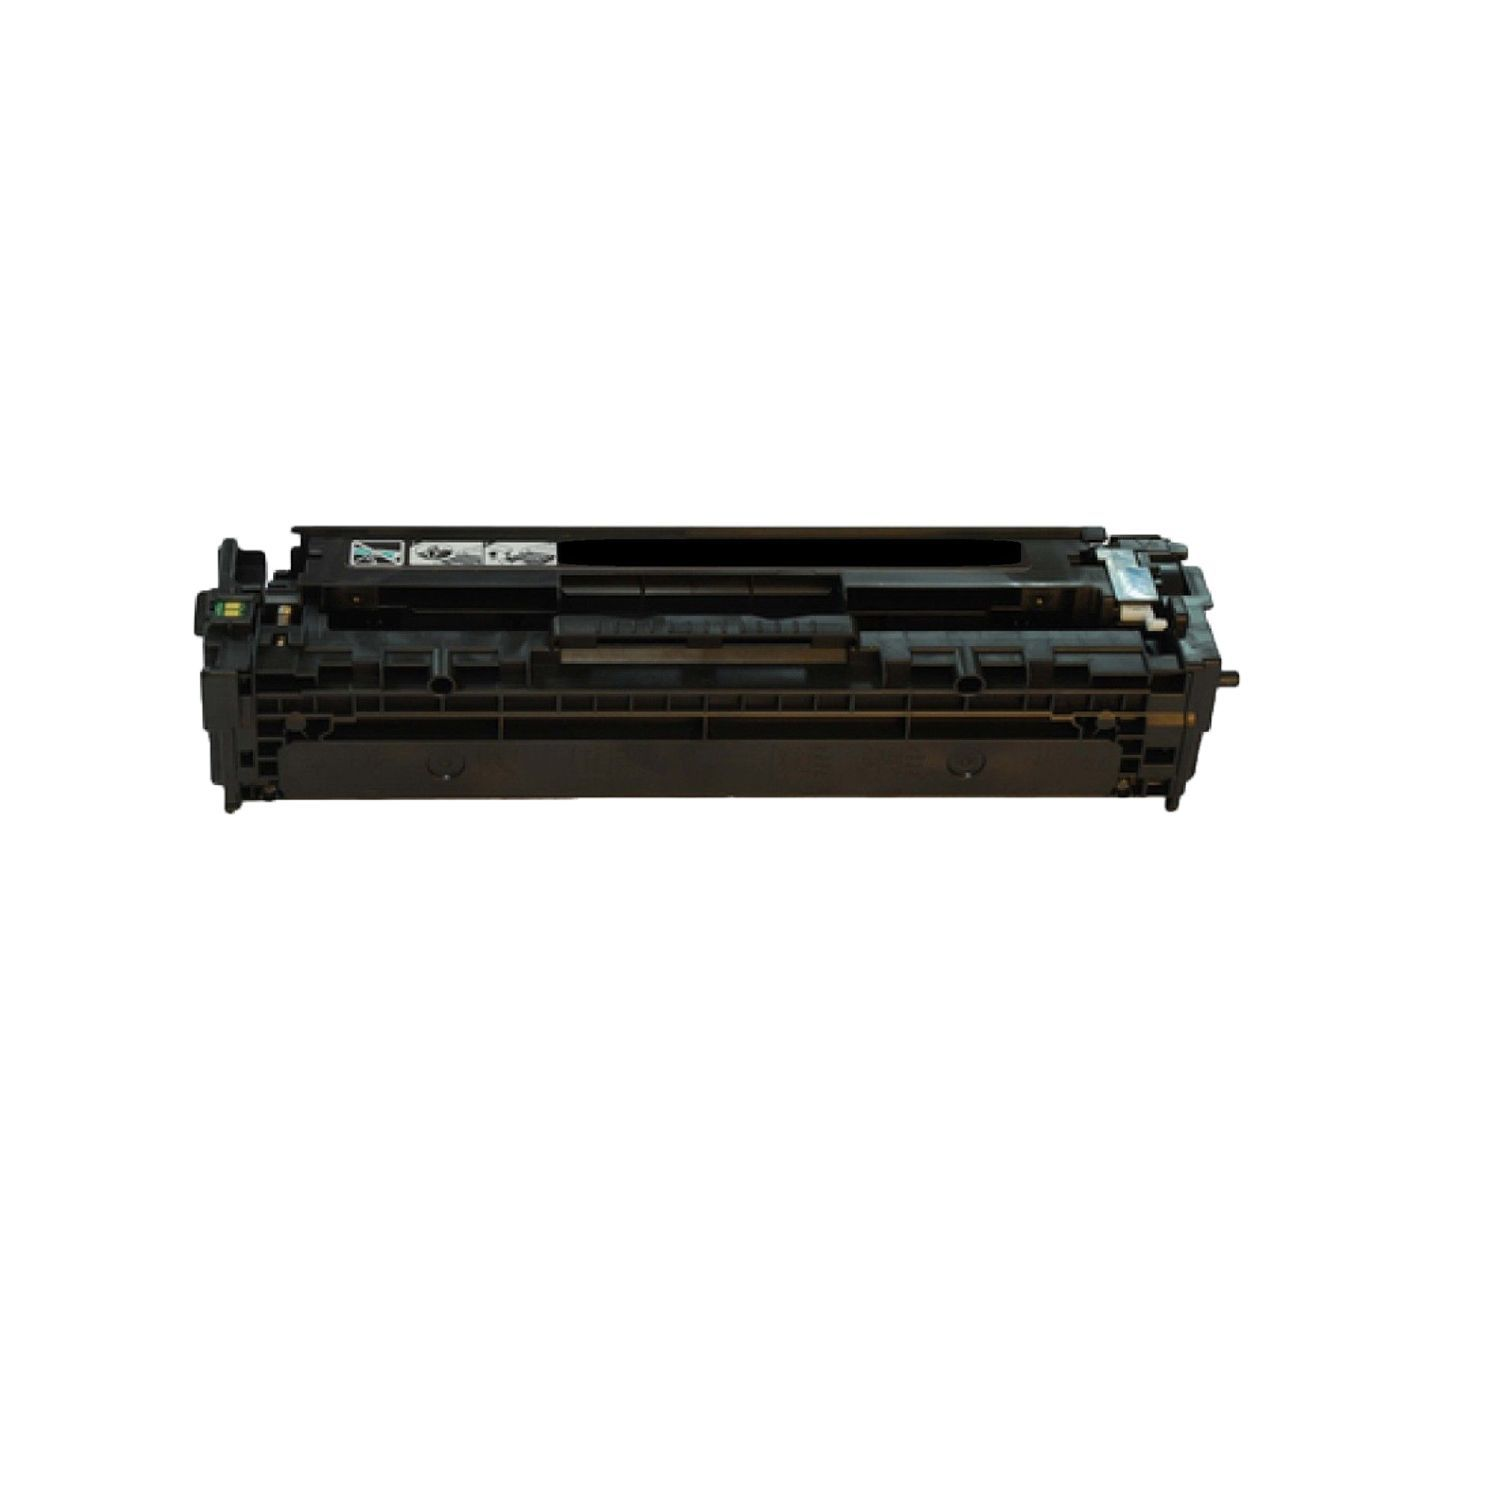 N 1PK Compatible CB540A Toner Cartridge For HP Color LaserJet CM1312 MFP CM1321nfi CP1215 CP1515n CP1518ni